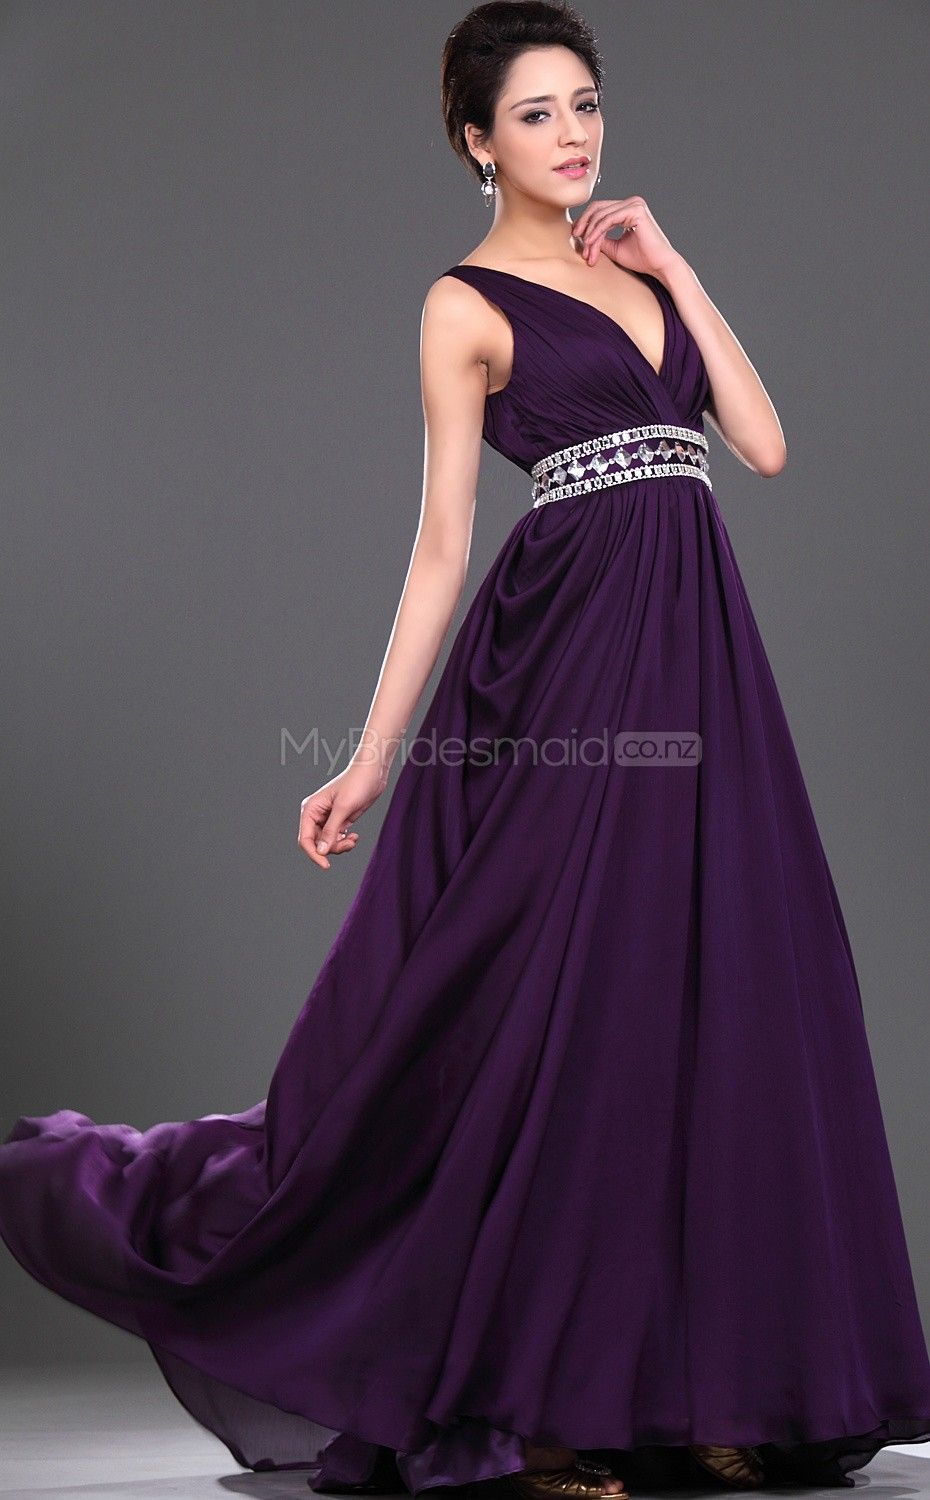 Regency chiffon a line v neck floor length bridesmaid dresses explore purple bridesmaid dresses purple dress and more ombrellifo Image collections